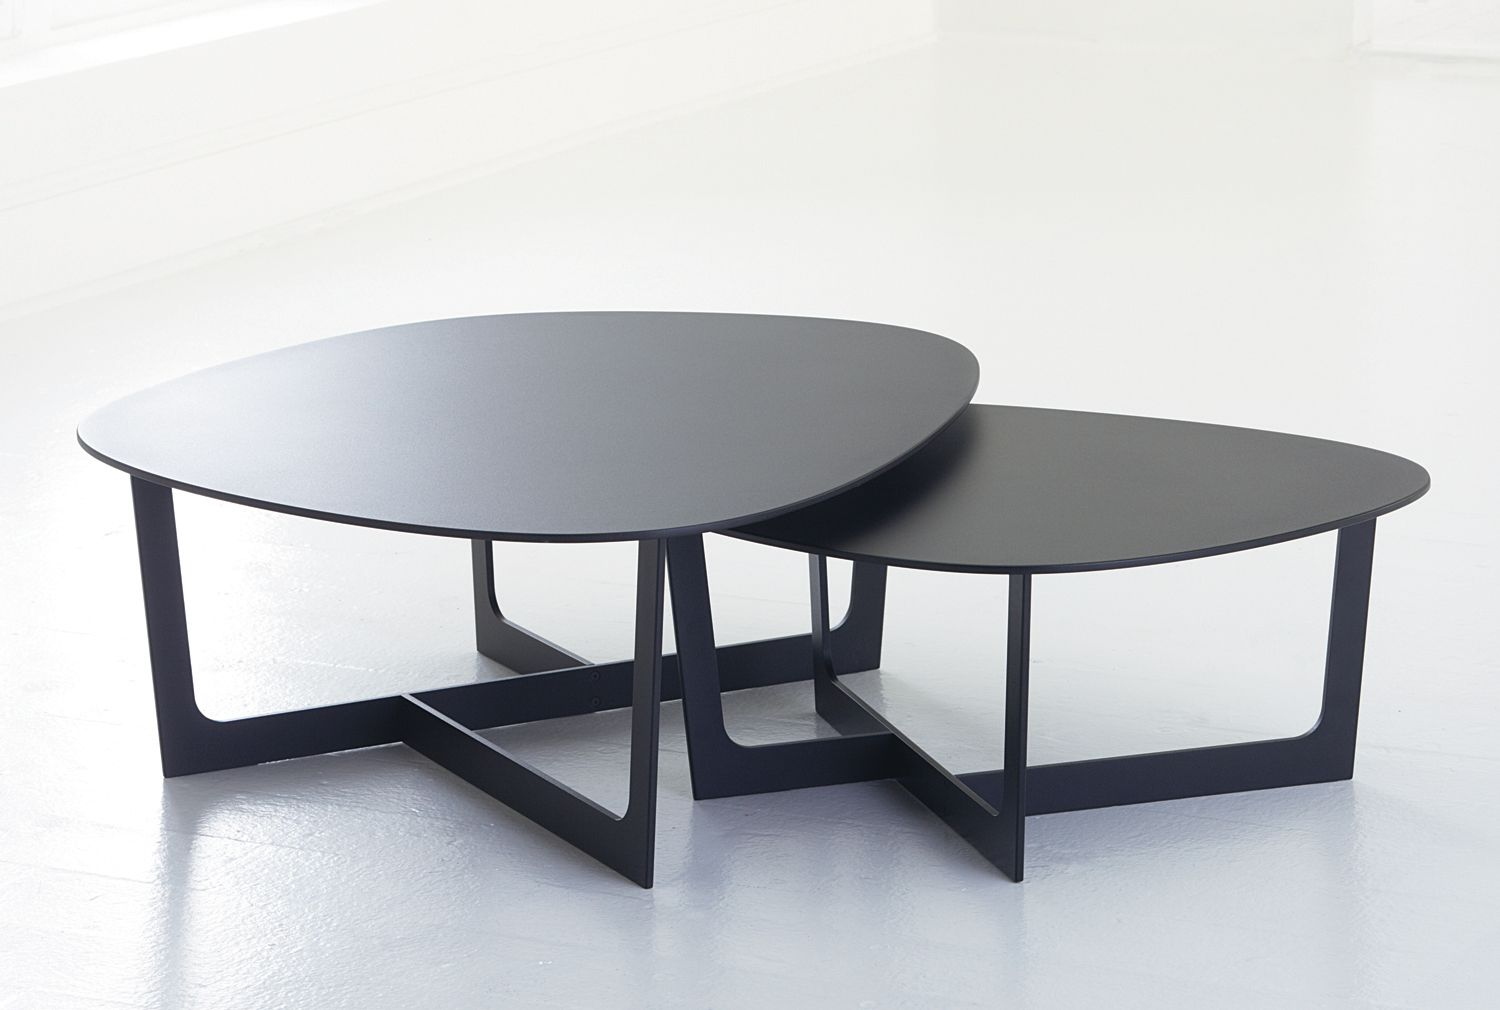 Insula Table Black Or White Hightower Coffee Table Sofa Table Design Coffee Table Design [ 1010 x 1500 Pixel ]